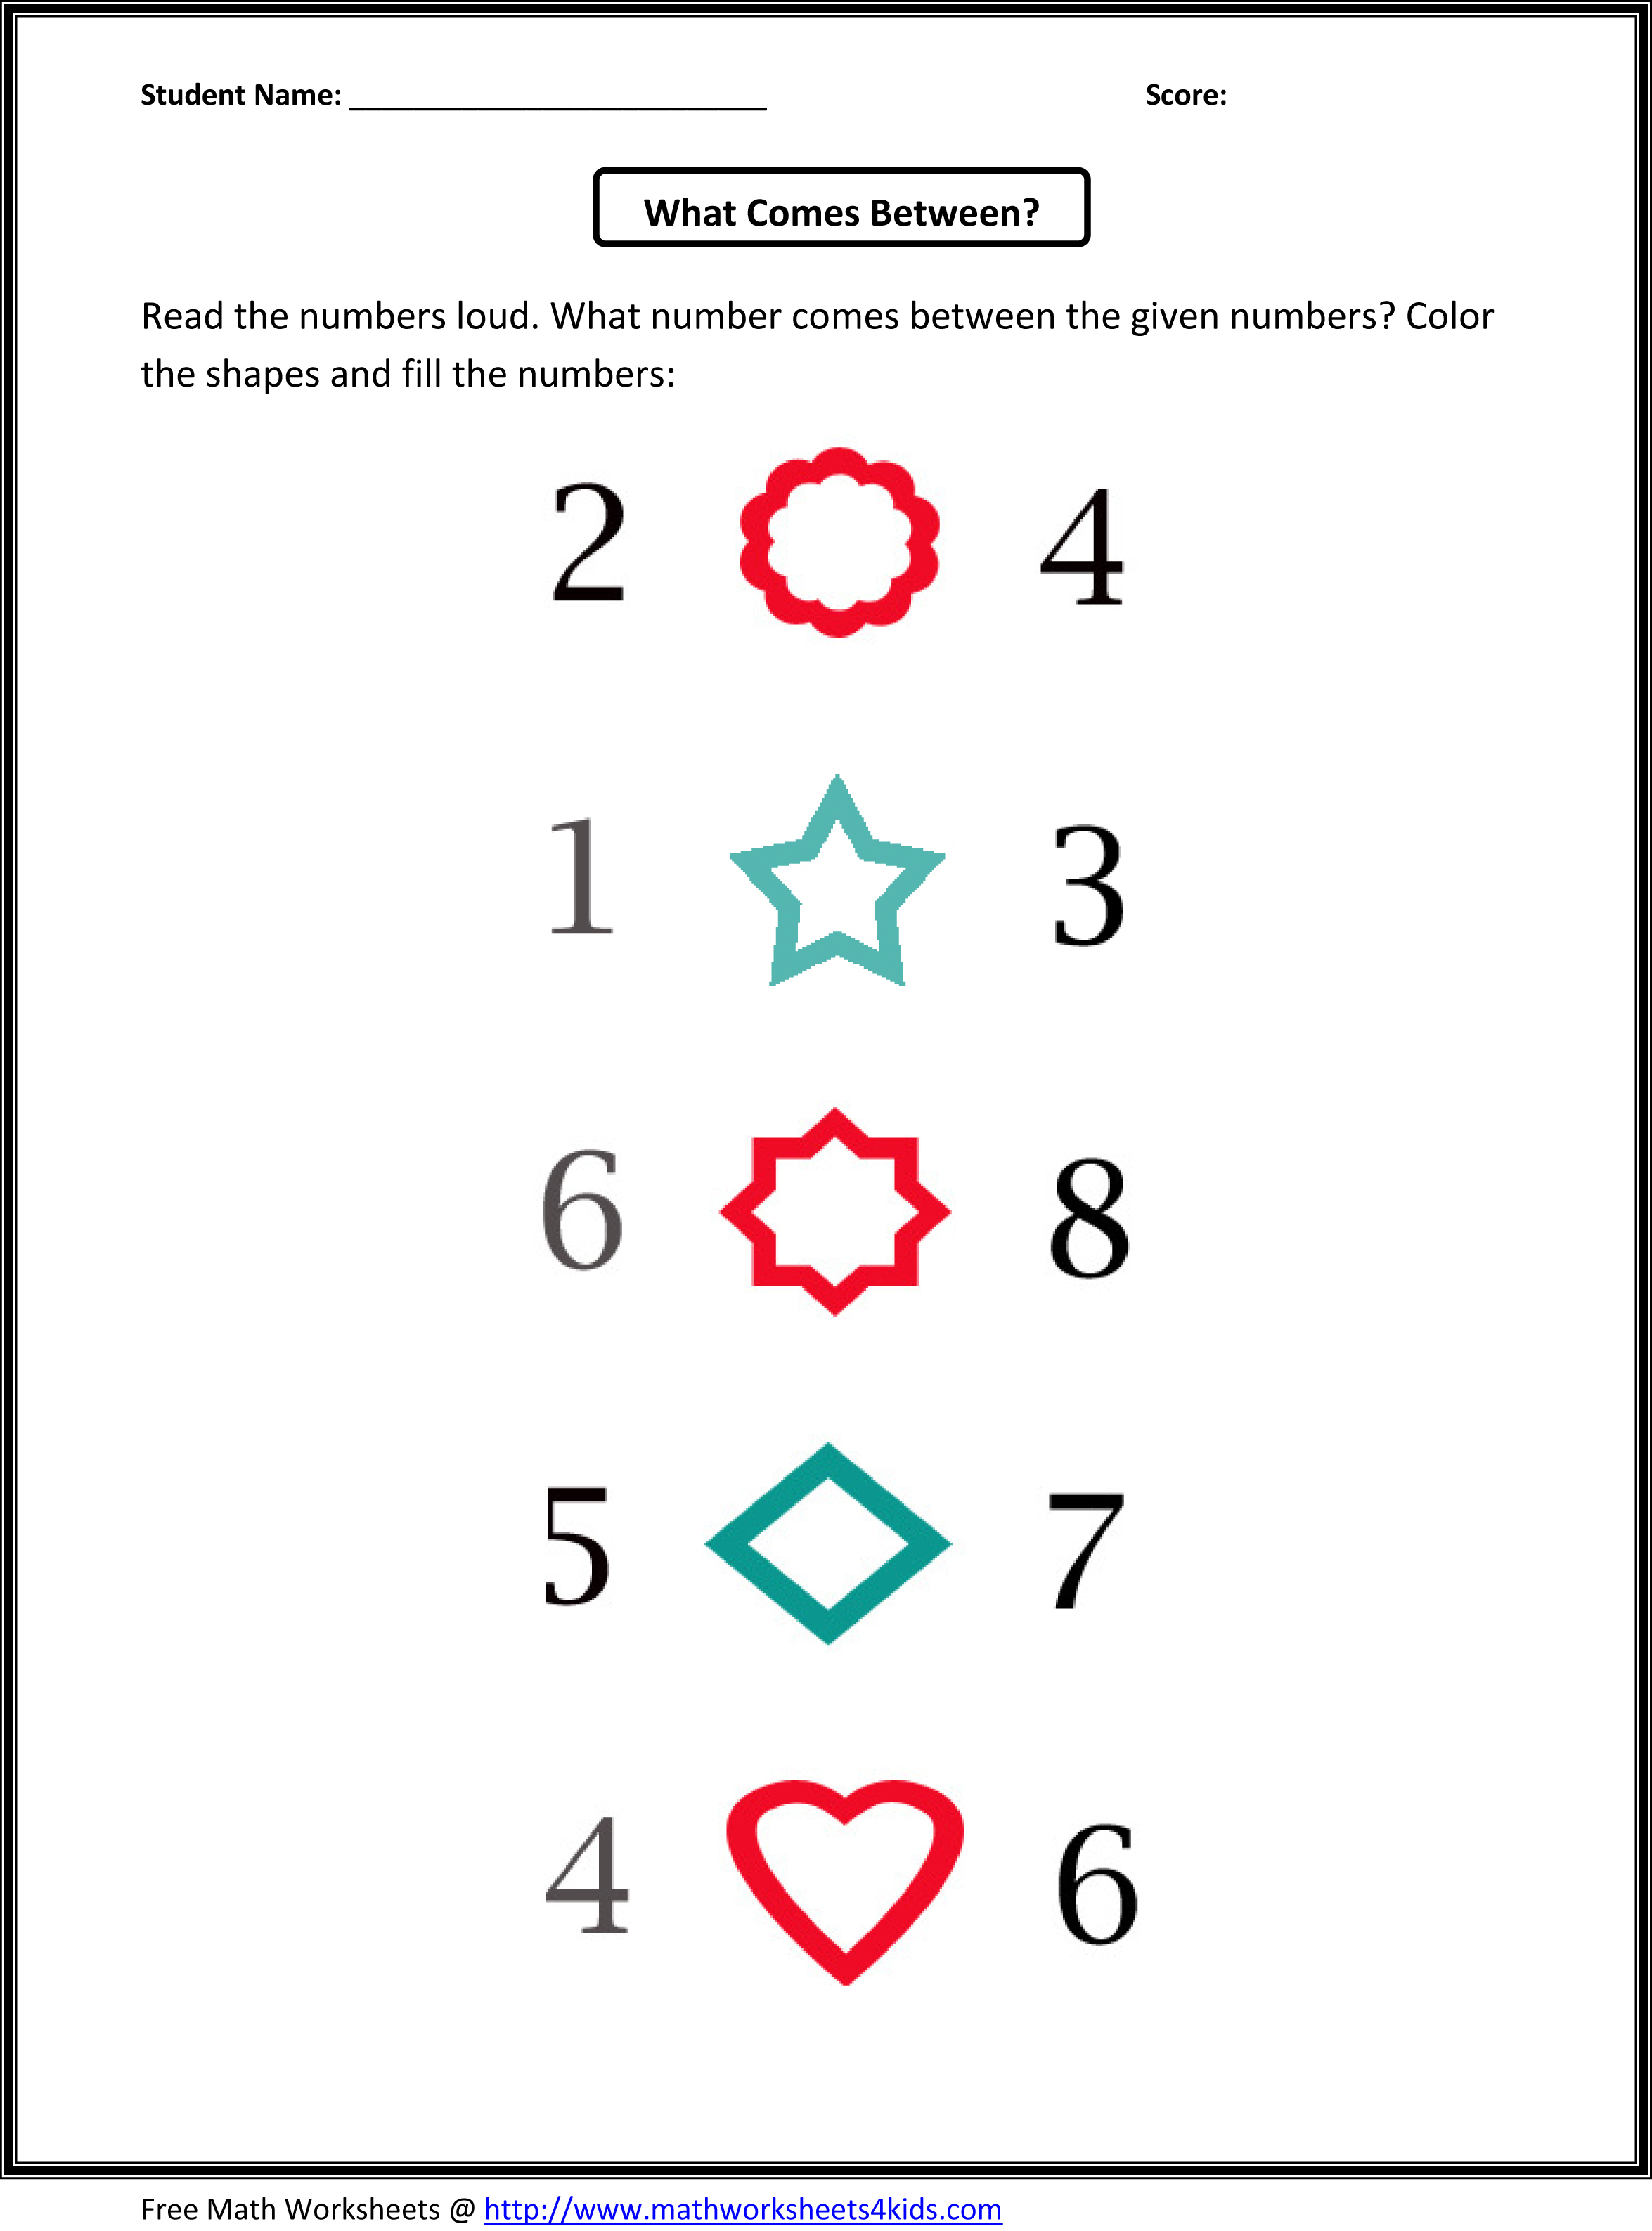 Number Patterns - WorksheetWorks.com